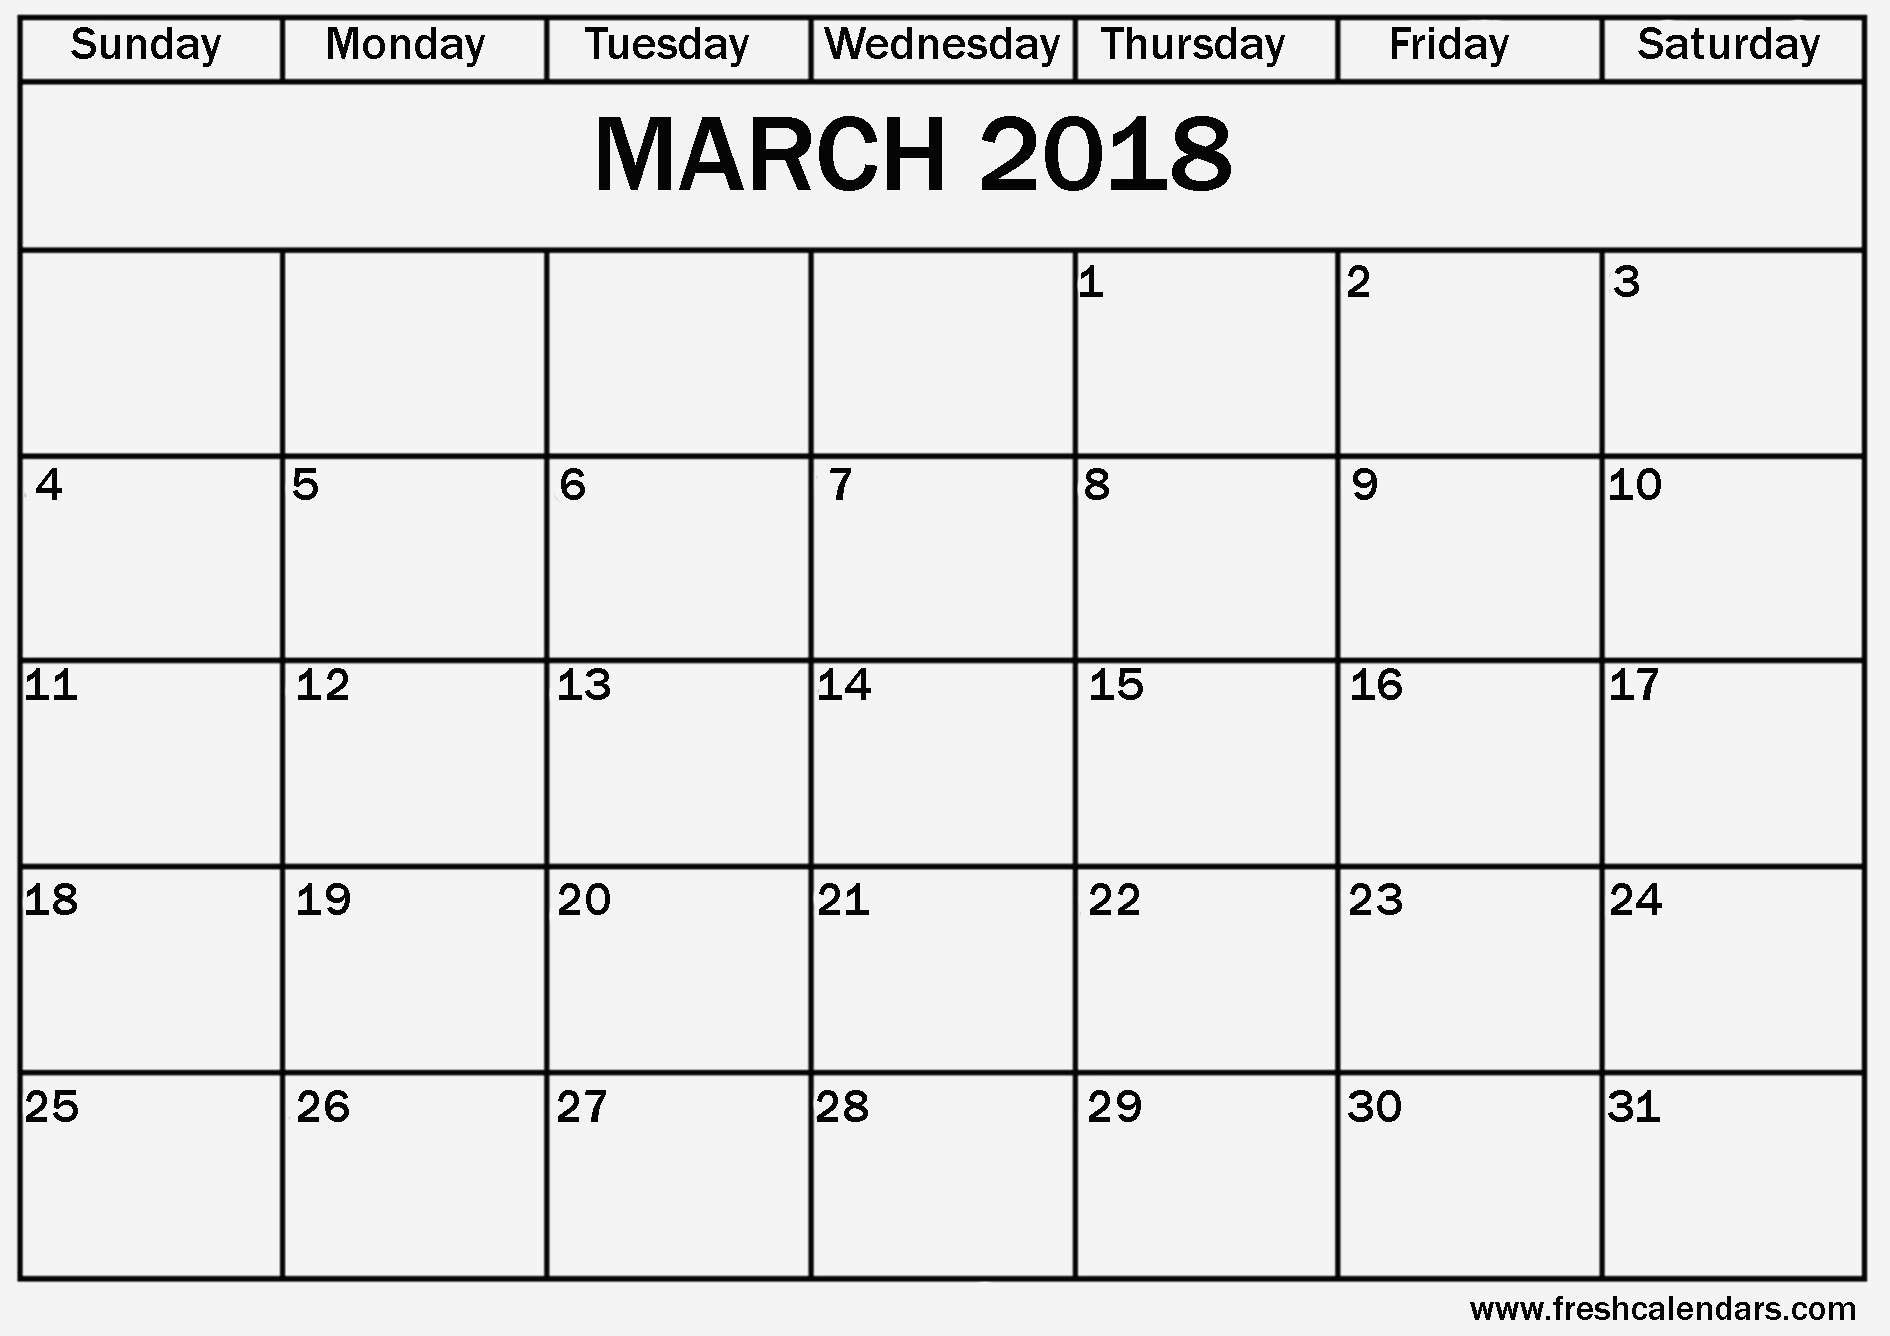 March Calendar Templates Mejores Y Más Novedosos Excel Monthly Calendar Template the Spreadsheet Library Of March Calendar Templates Más Recientes Excel Medication Schedule Template Best 13 Best Calendar Template